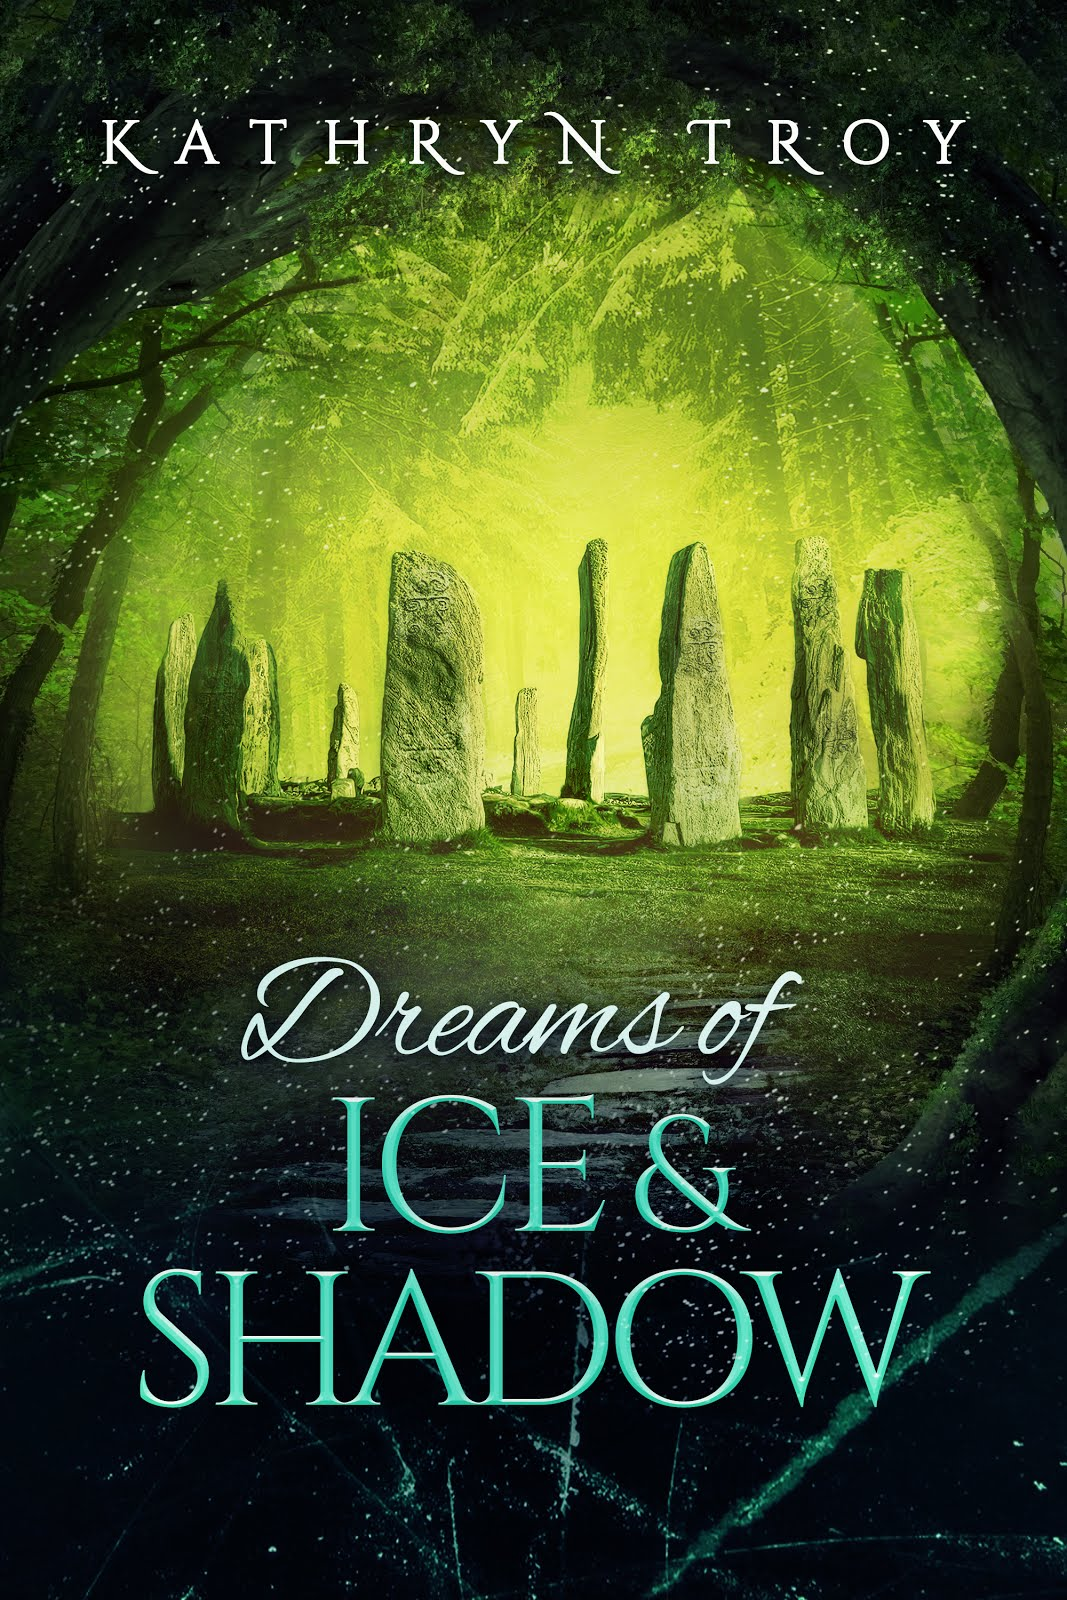 Frostbite Book 2: Dreams of Ice and Shadow Available Now!